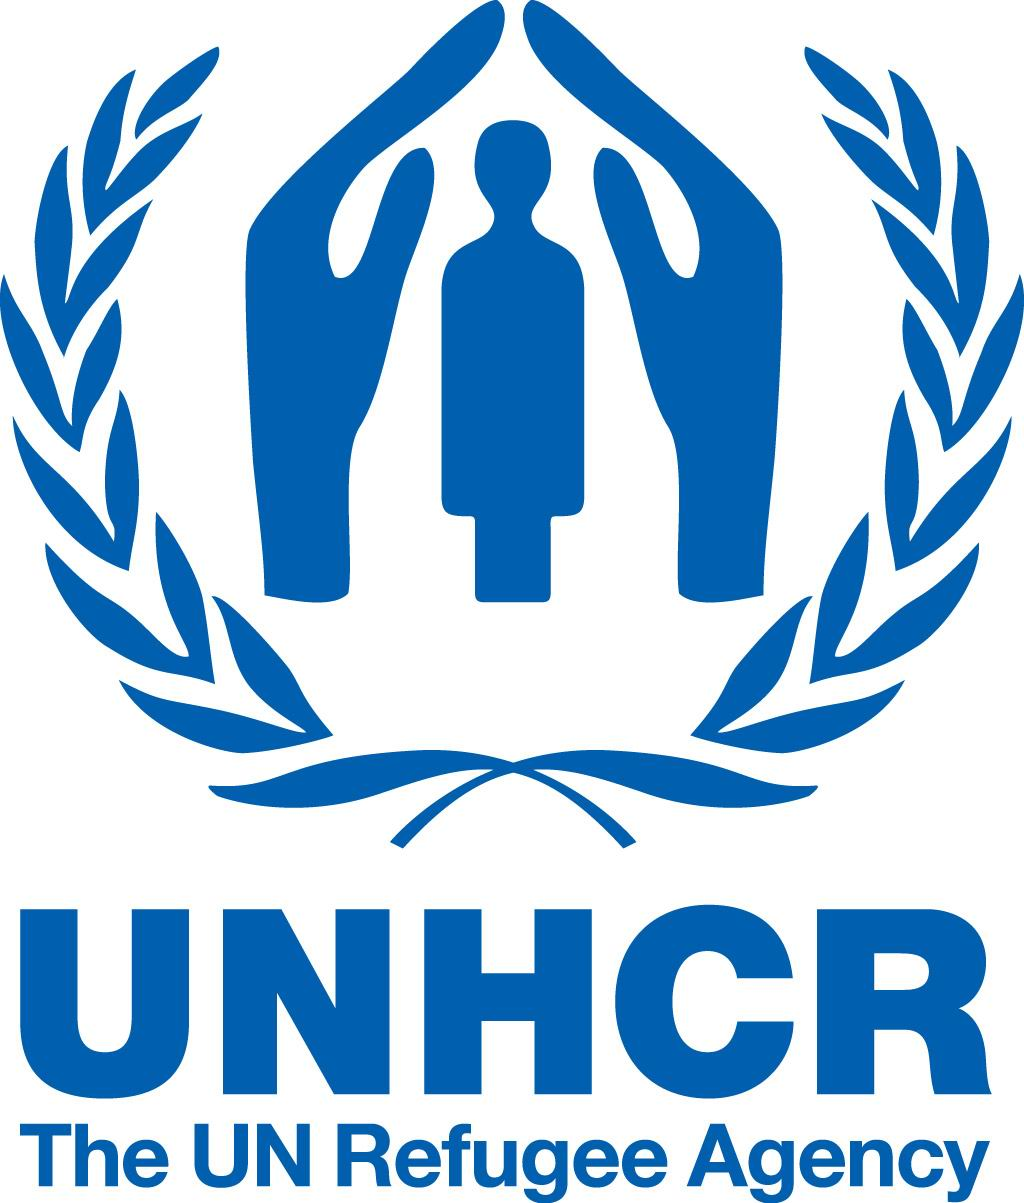 United Nations High Commissioner for Refugees (UNHCR).